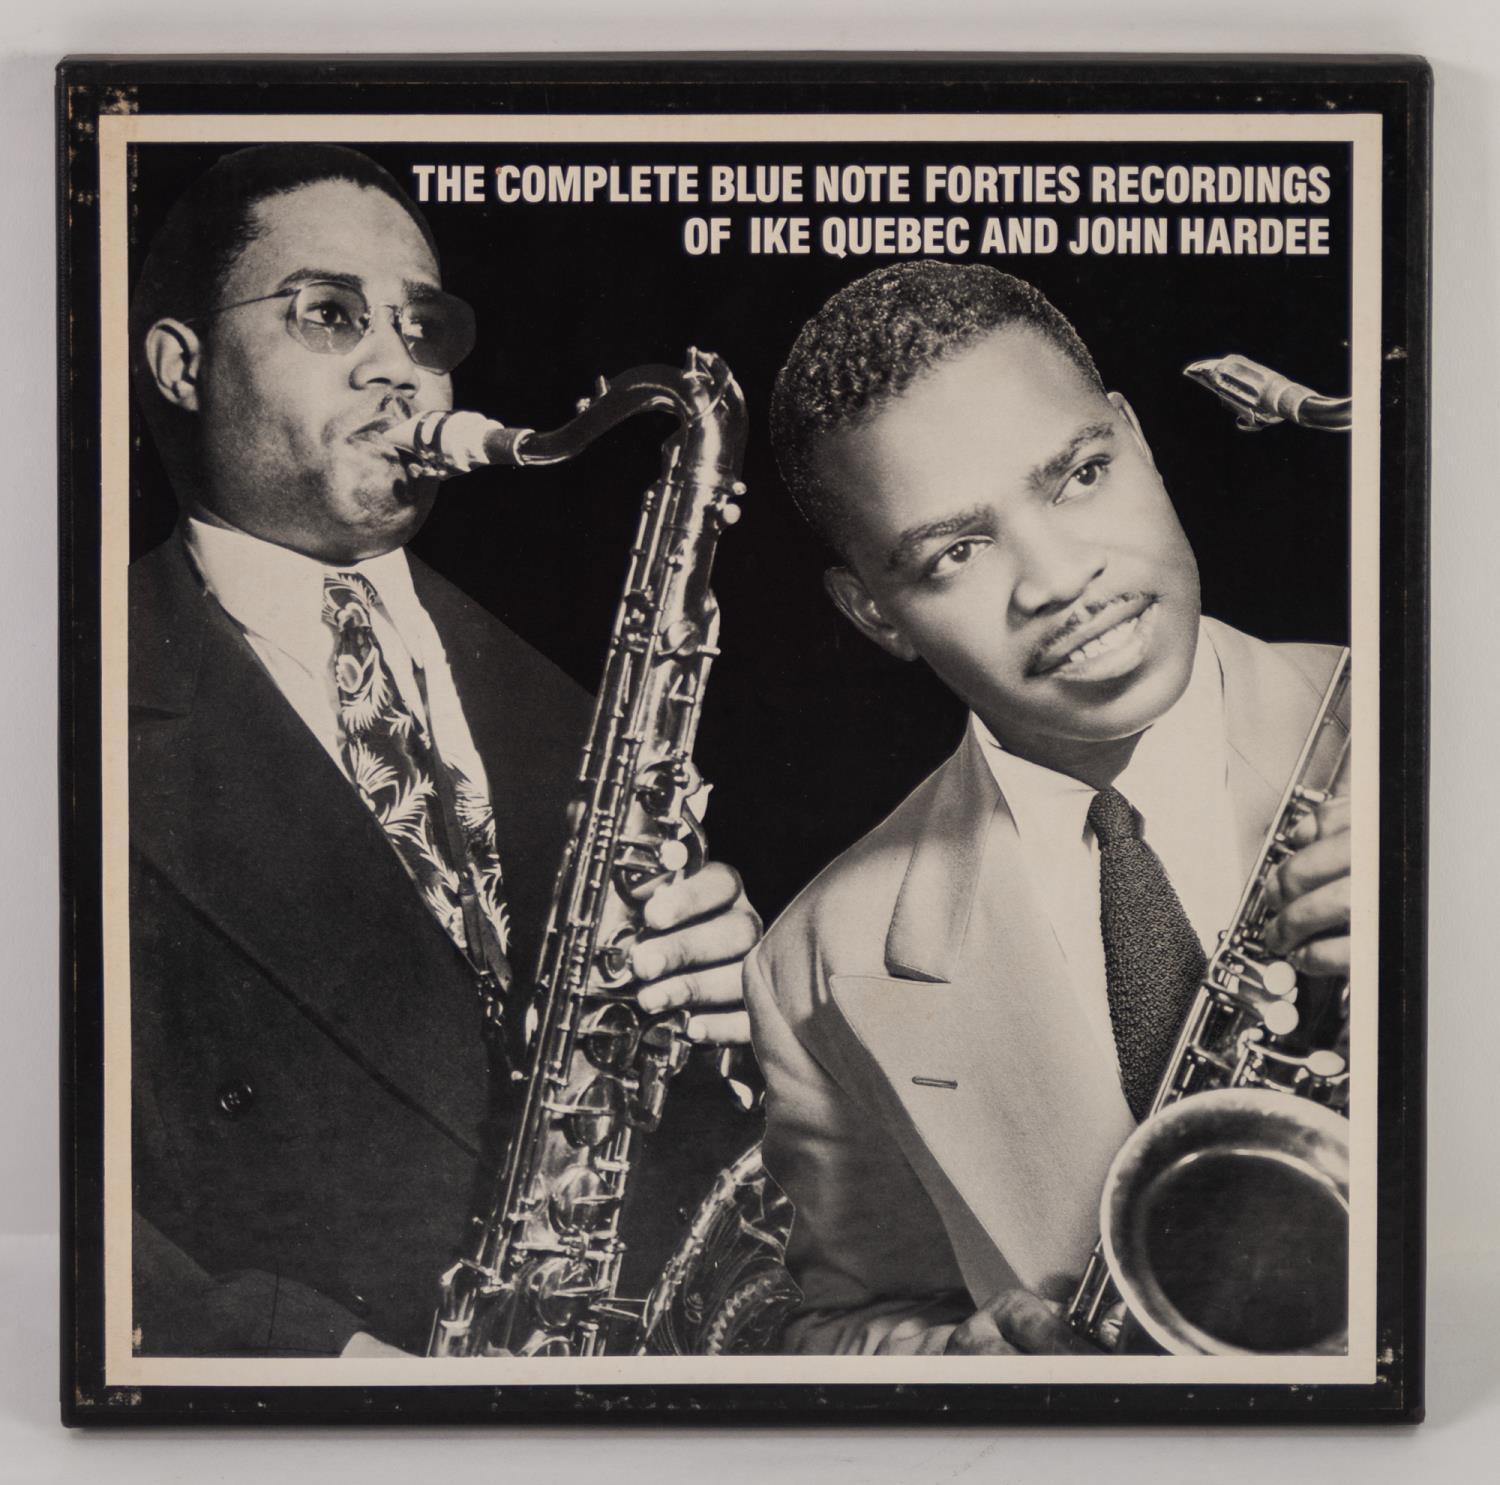 JAZZ, VINYL RECORDS- M IS FOR MOSAIC RECORDS-THE COMPLETE BLUE NOTE FORTIES RECORDINGS OF IKE QUEBEC